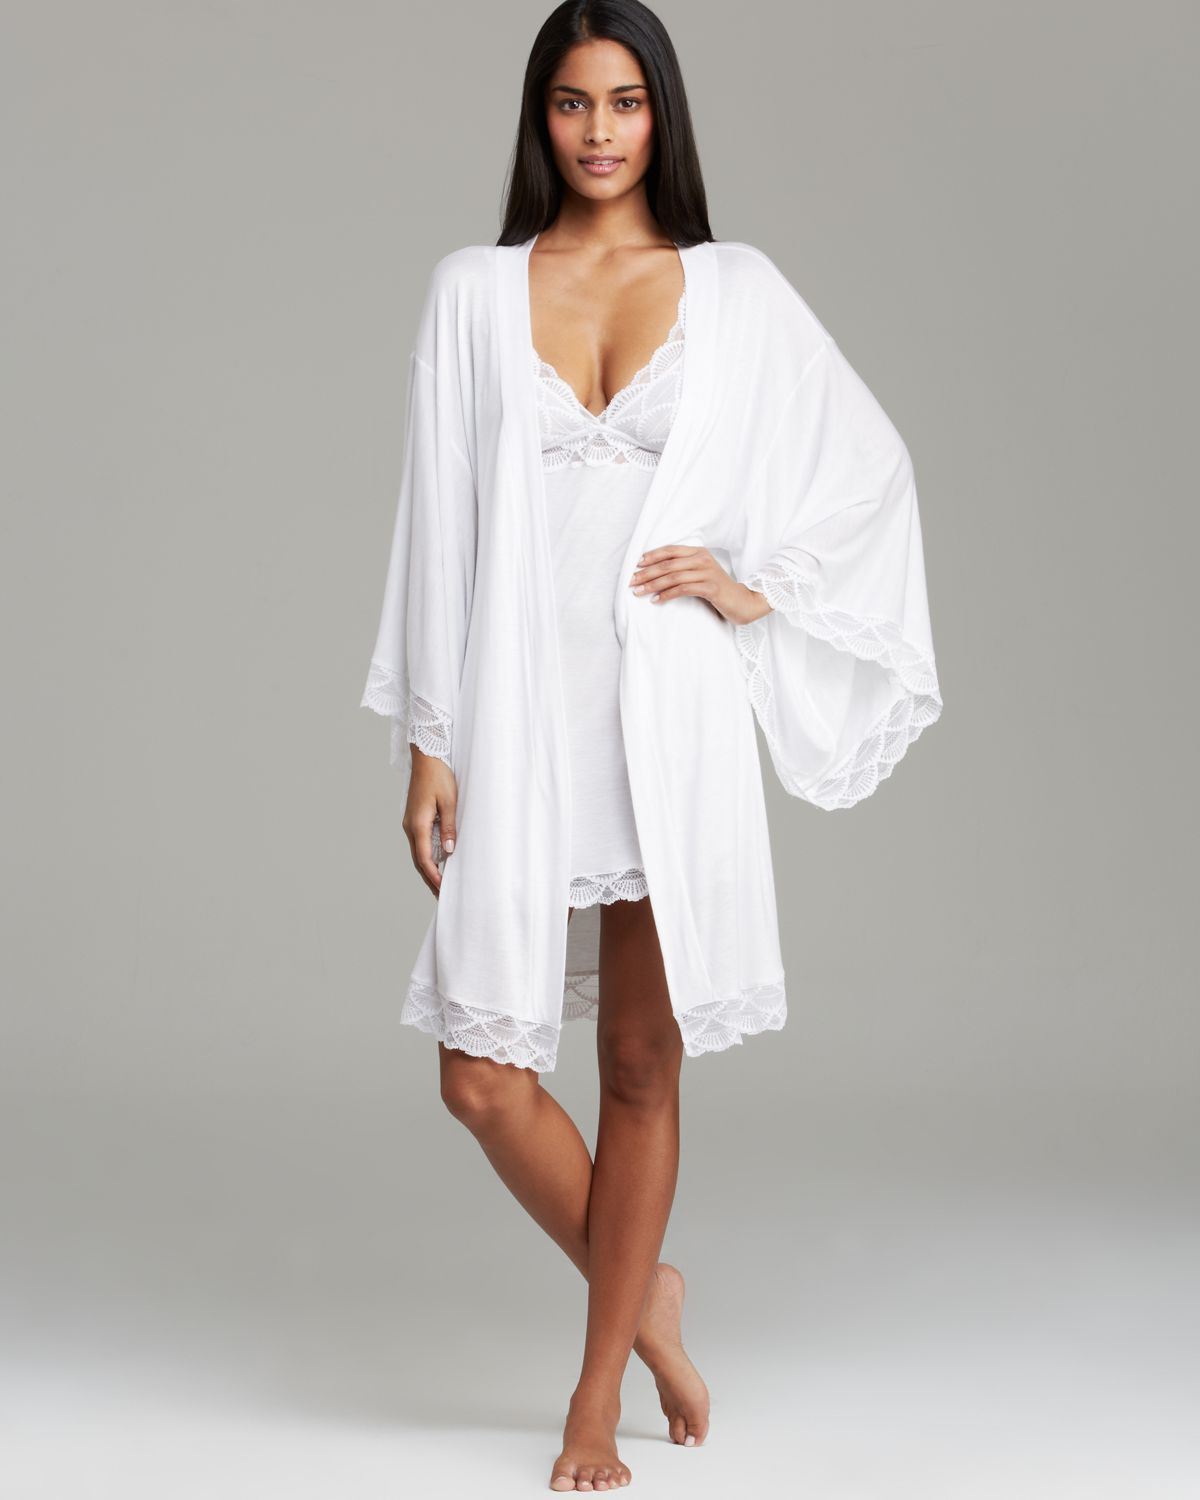 White And Gray Bathroom: Eberjey Matilda Kimono Robe In White